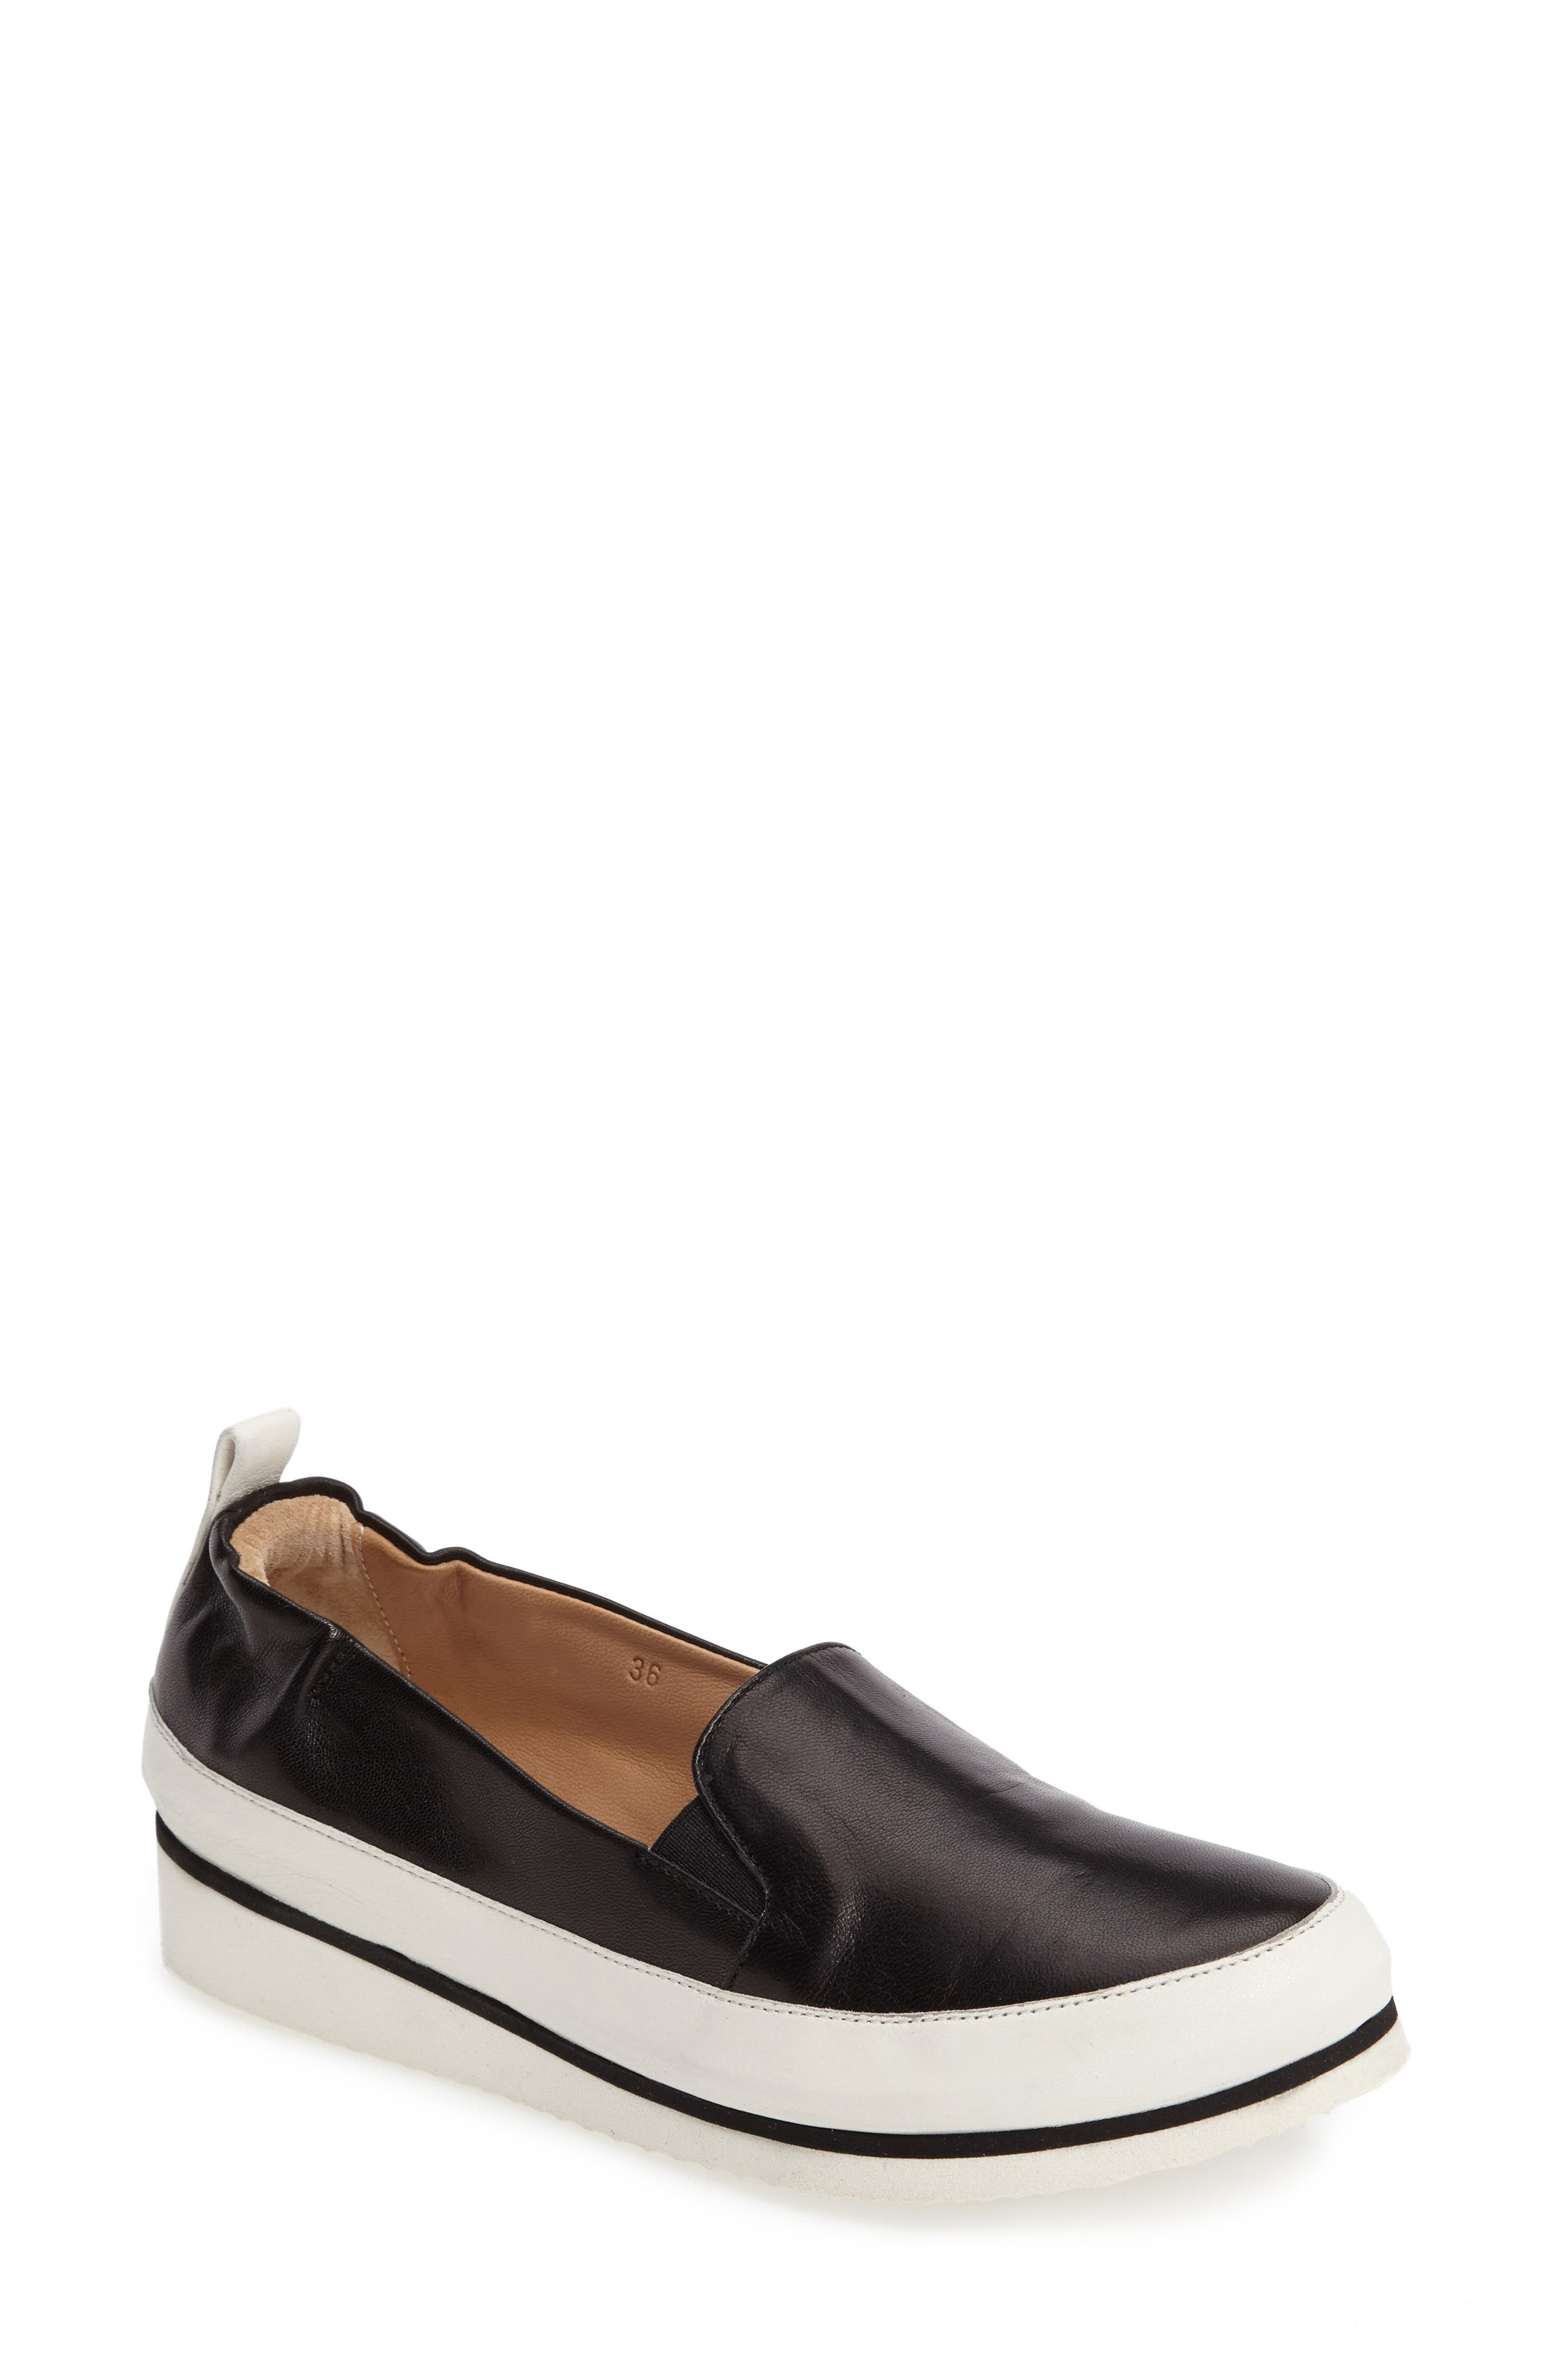 Nell Slip-On Sneaker,                             Main thumbnail 5, color,